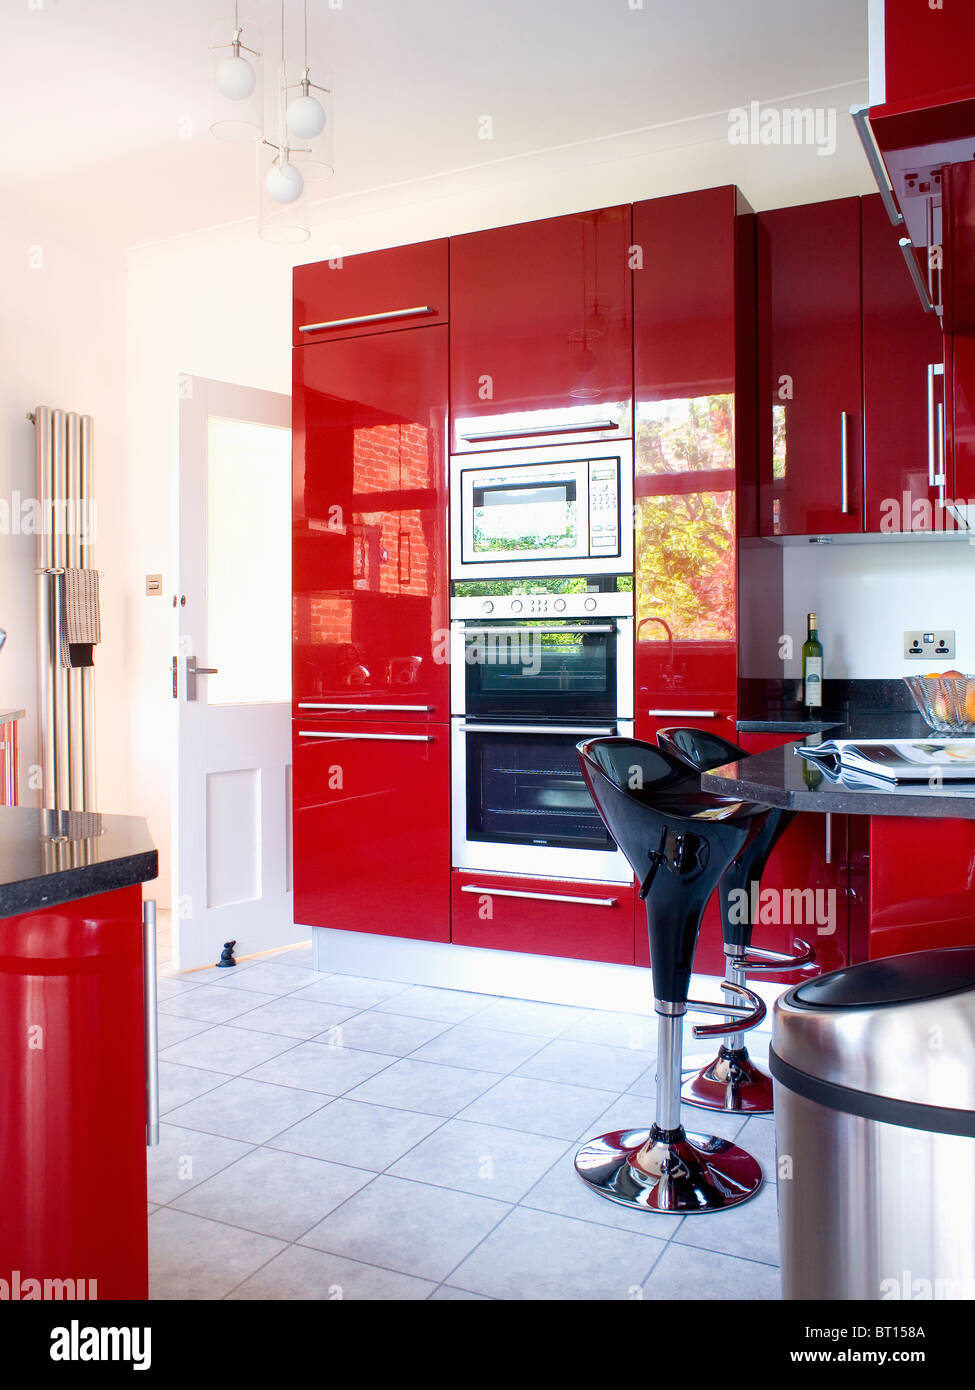 Double Ovens In Red Acrylic Tower Units In Modern Kitchen